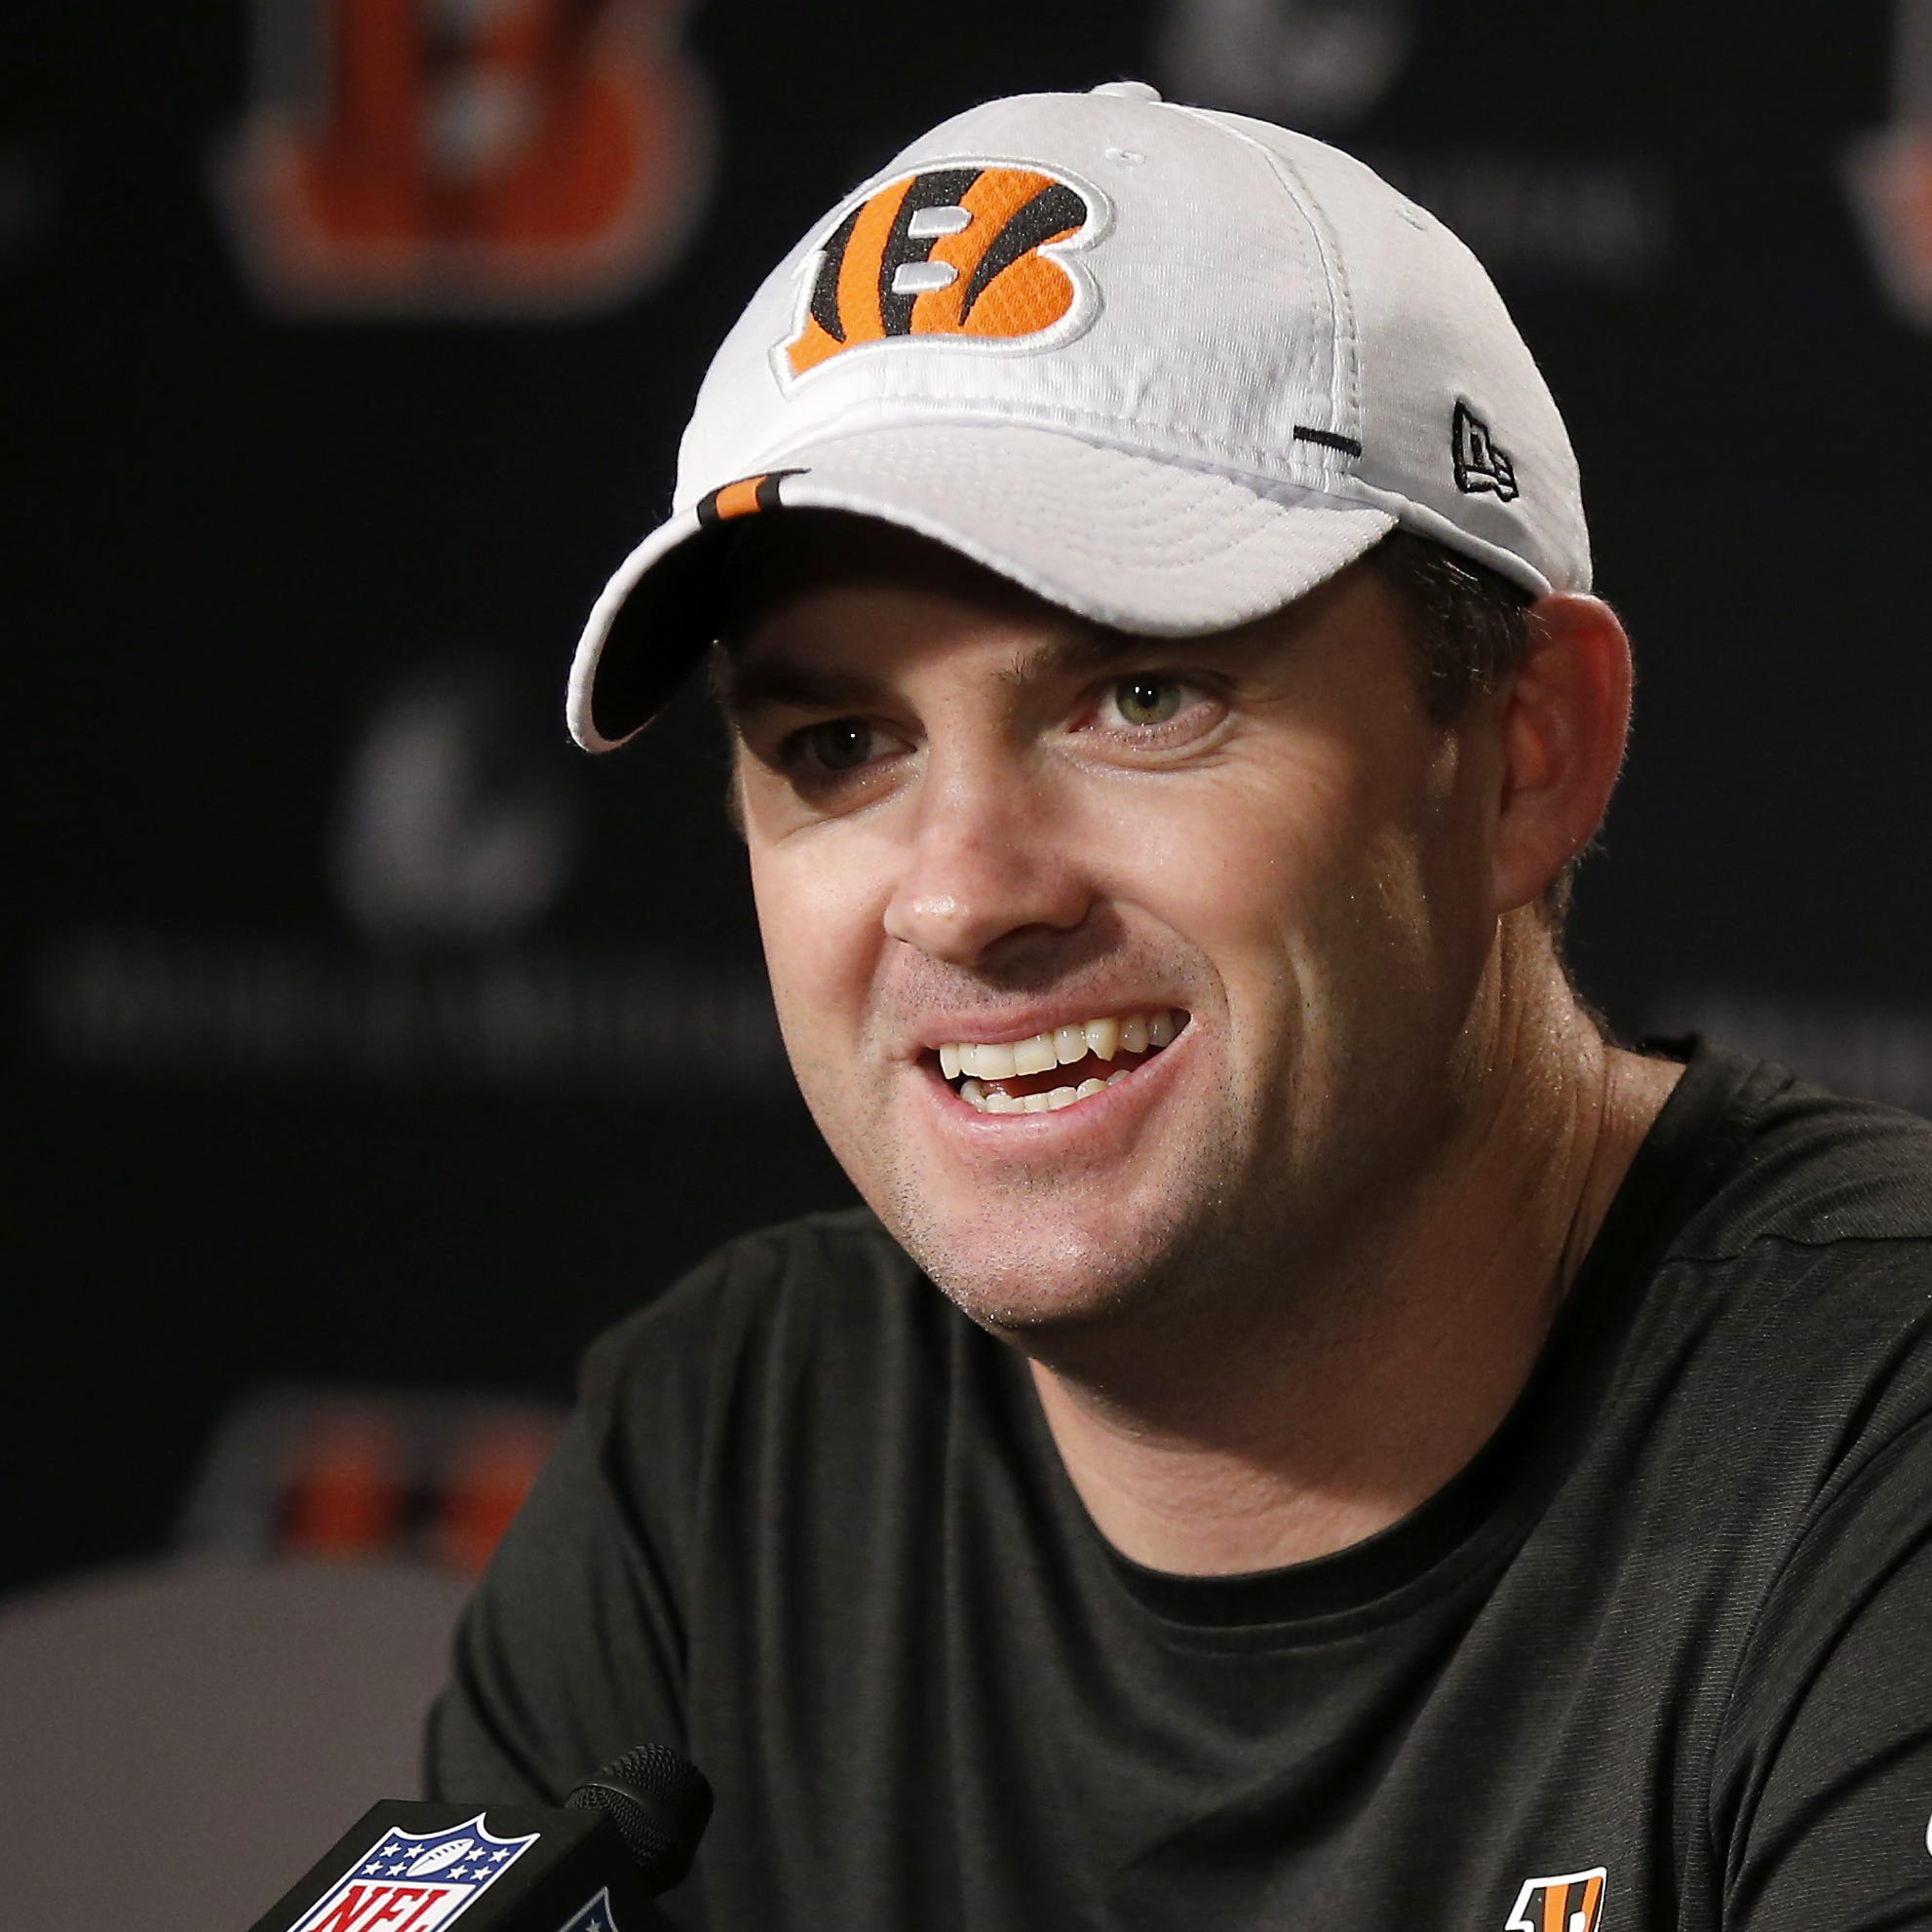 BX: Why the Cincinnati Bengals Vegas odds to win the Super Bowl keep moving up